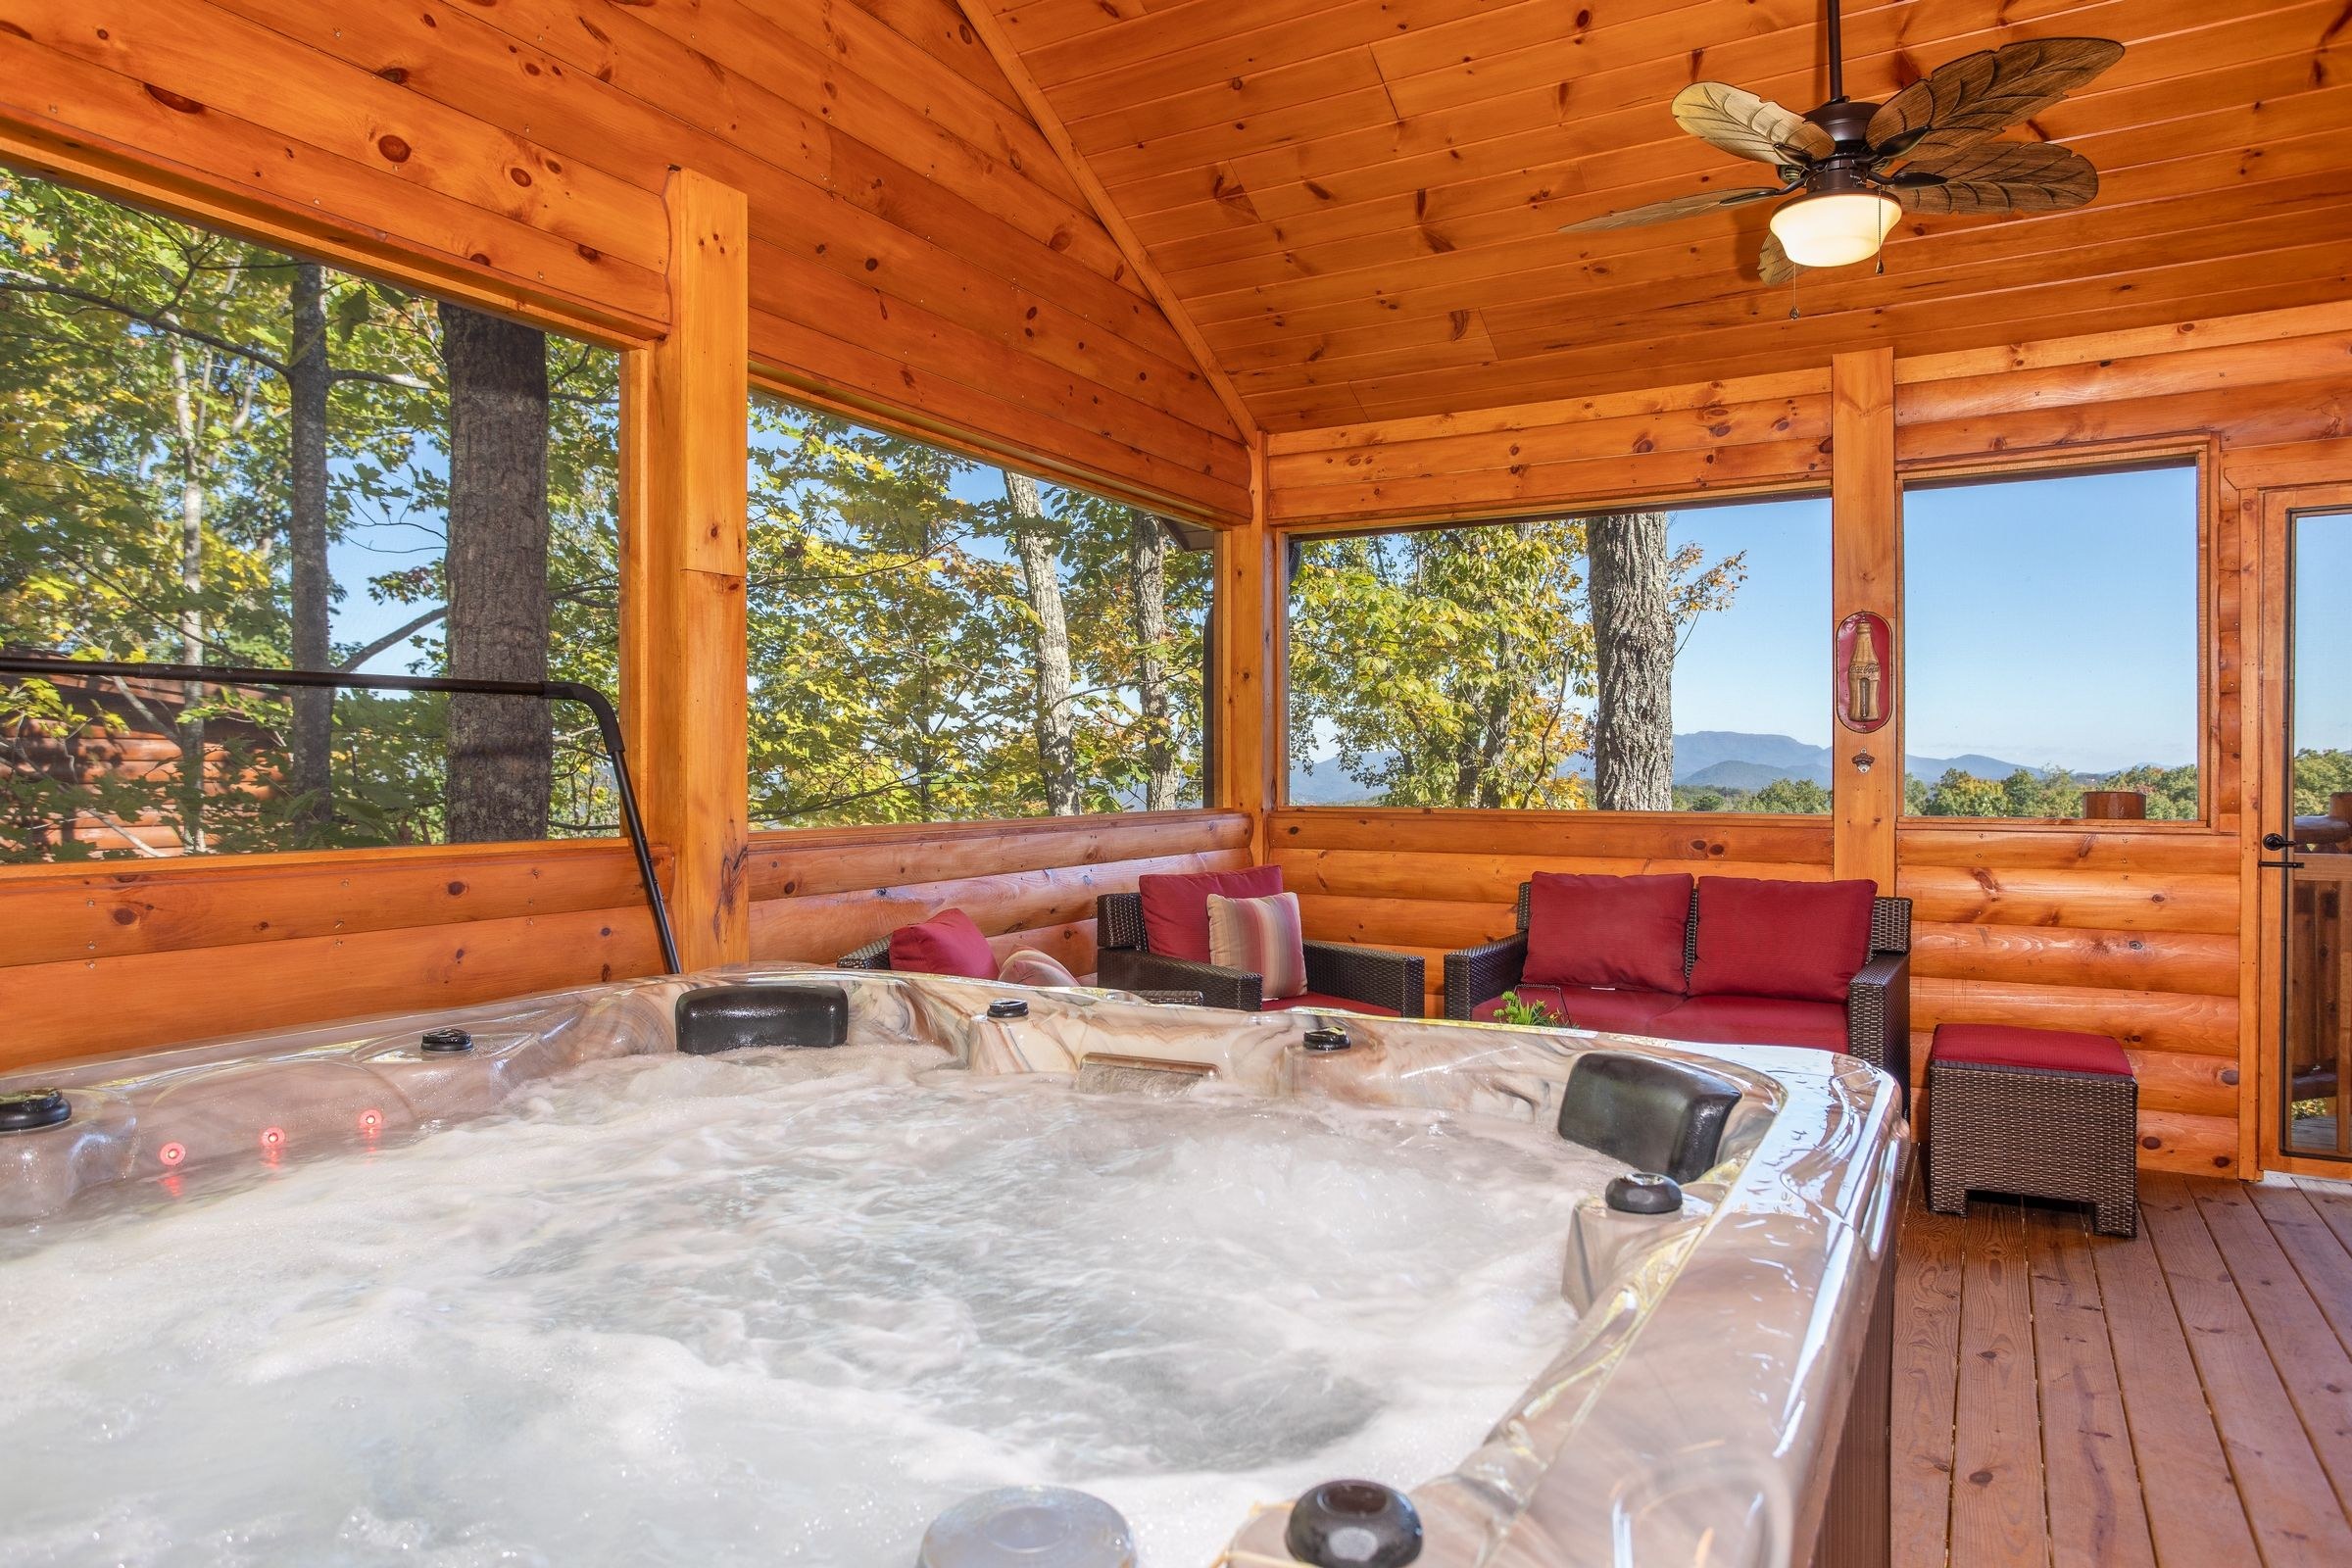 Panorama Luxury Plus 2 Bedroom Pigeon Forge Cabin Rental Cabin Rentals Cabins In The Smokies Tennessee Cabins